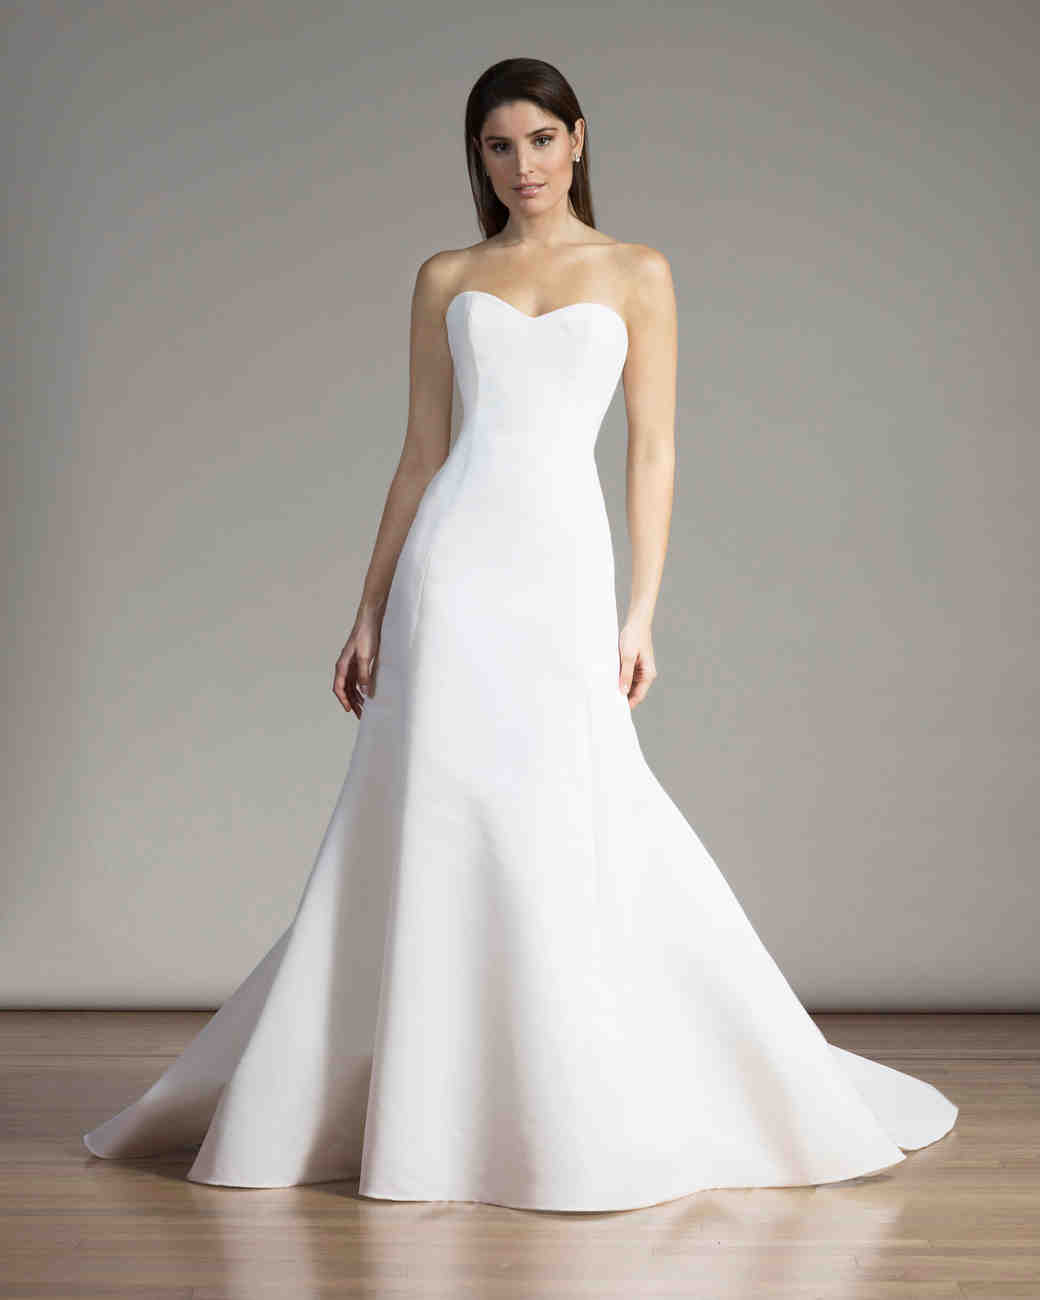 Liancarlo Simple All-White Wedding Dress